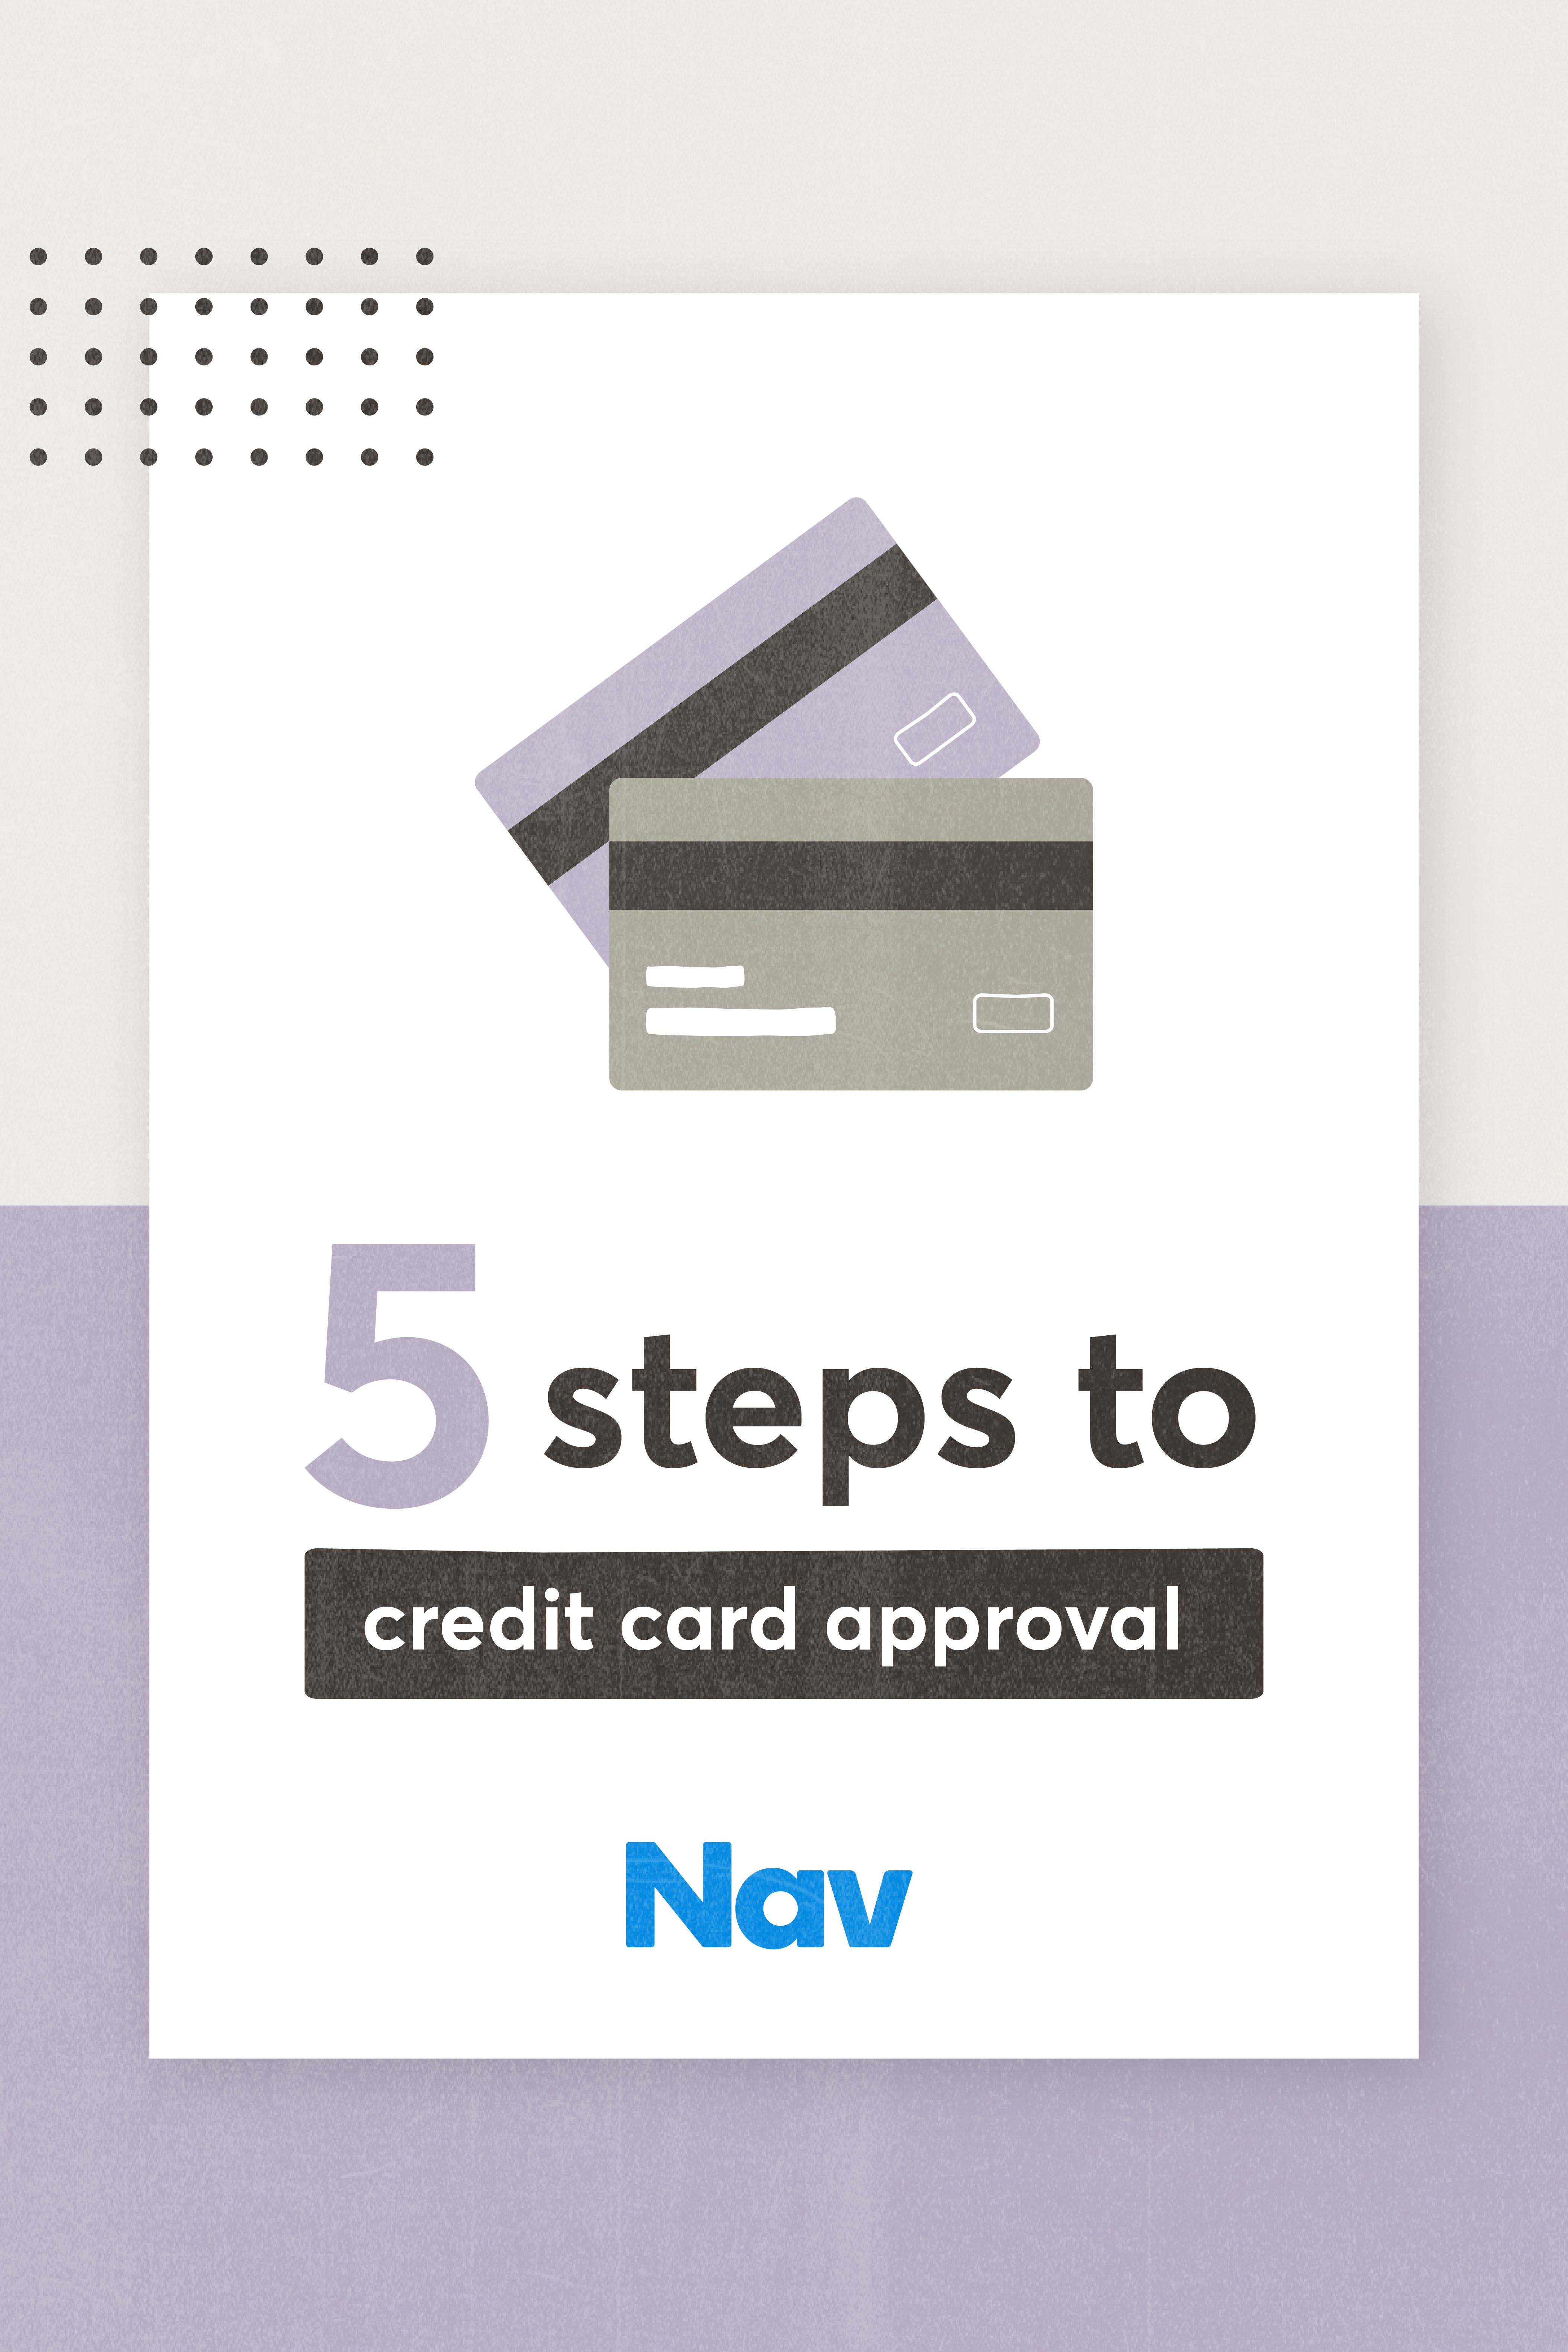 How To Get A Business Credit Card Business Credit Cards Small Business Credit Cards Credit Card Approval